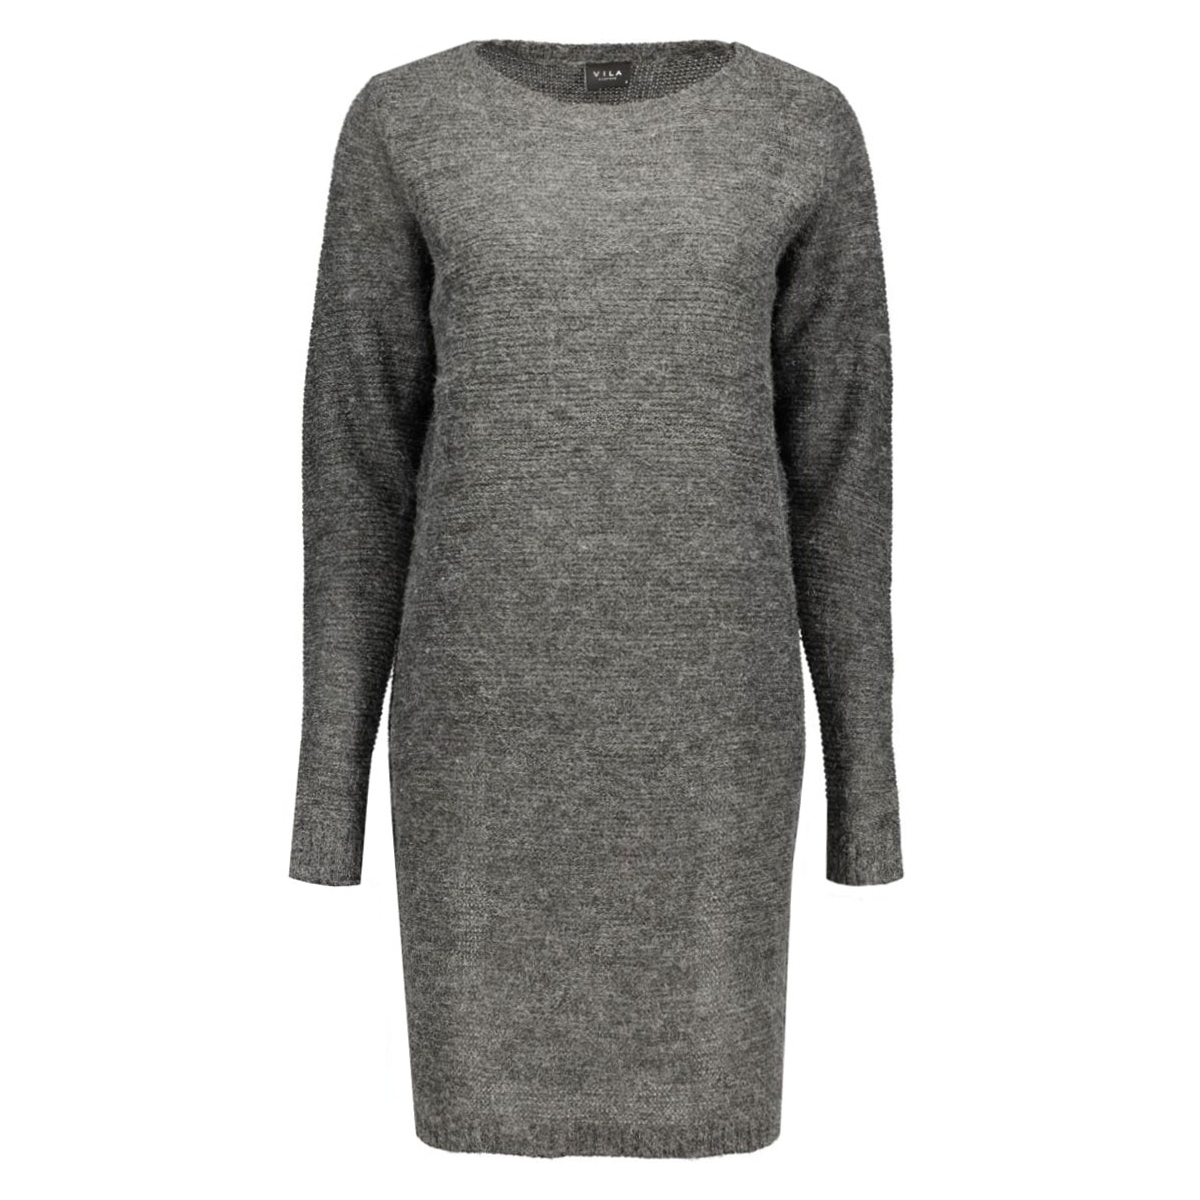 viriva rib dress-noos 14036027 vila jurk dark grey melange